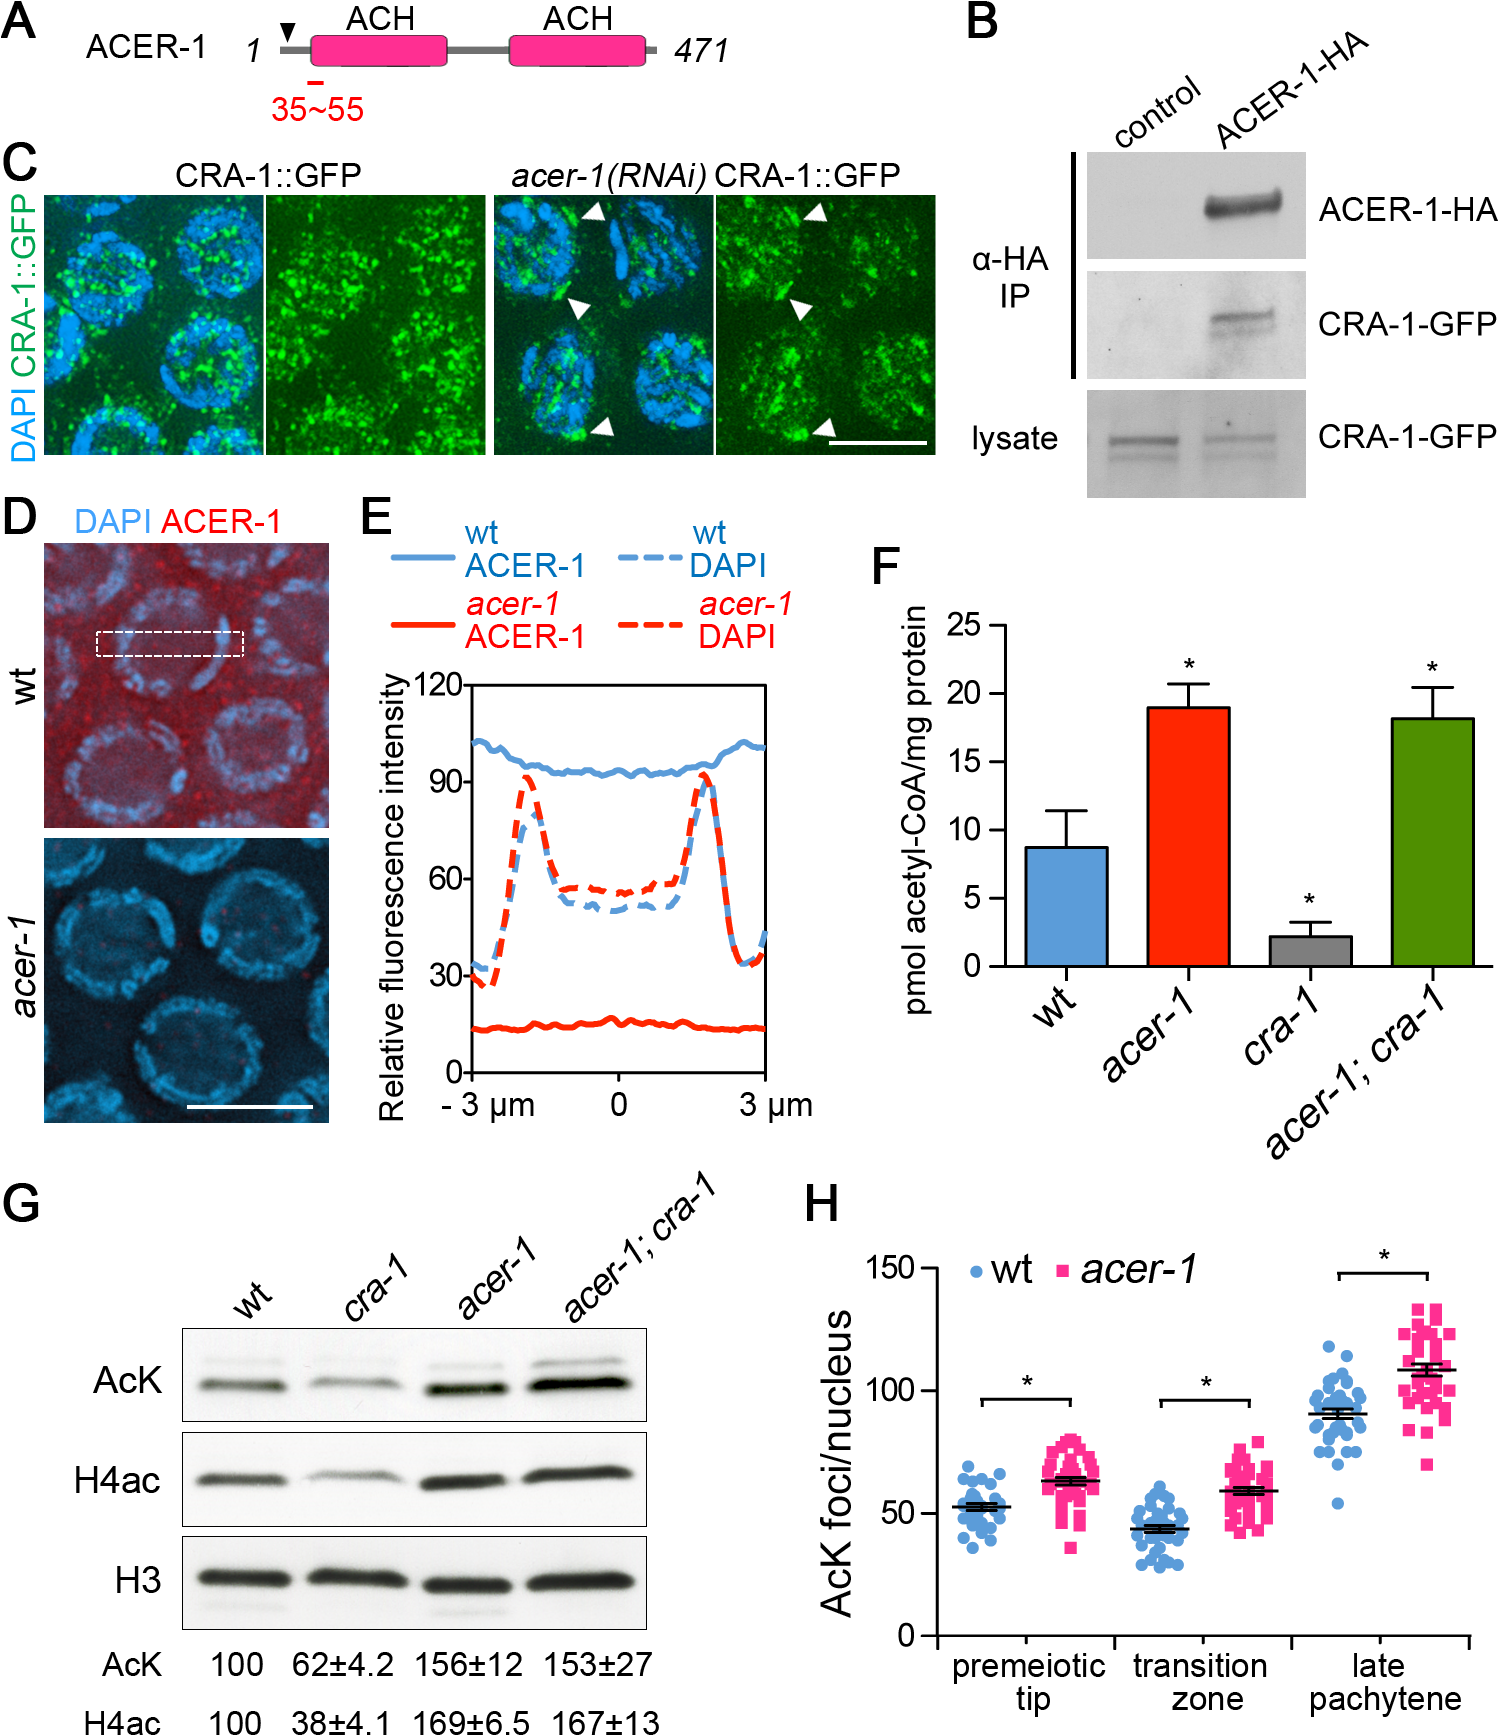 CRA-1 regulates histone acetylation by antagonizing ACER-1.